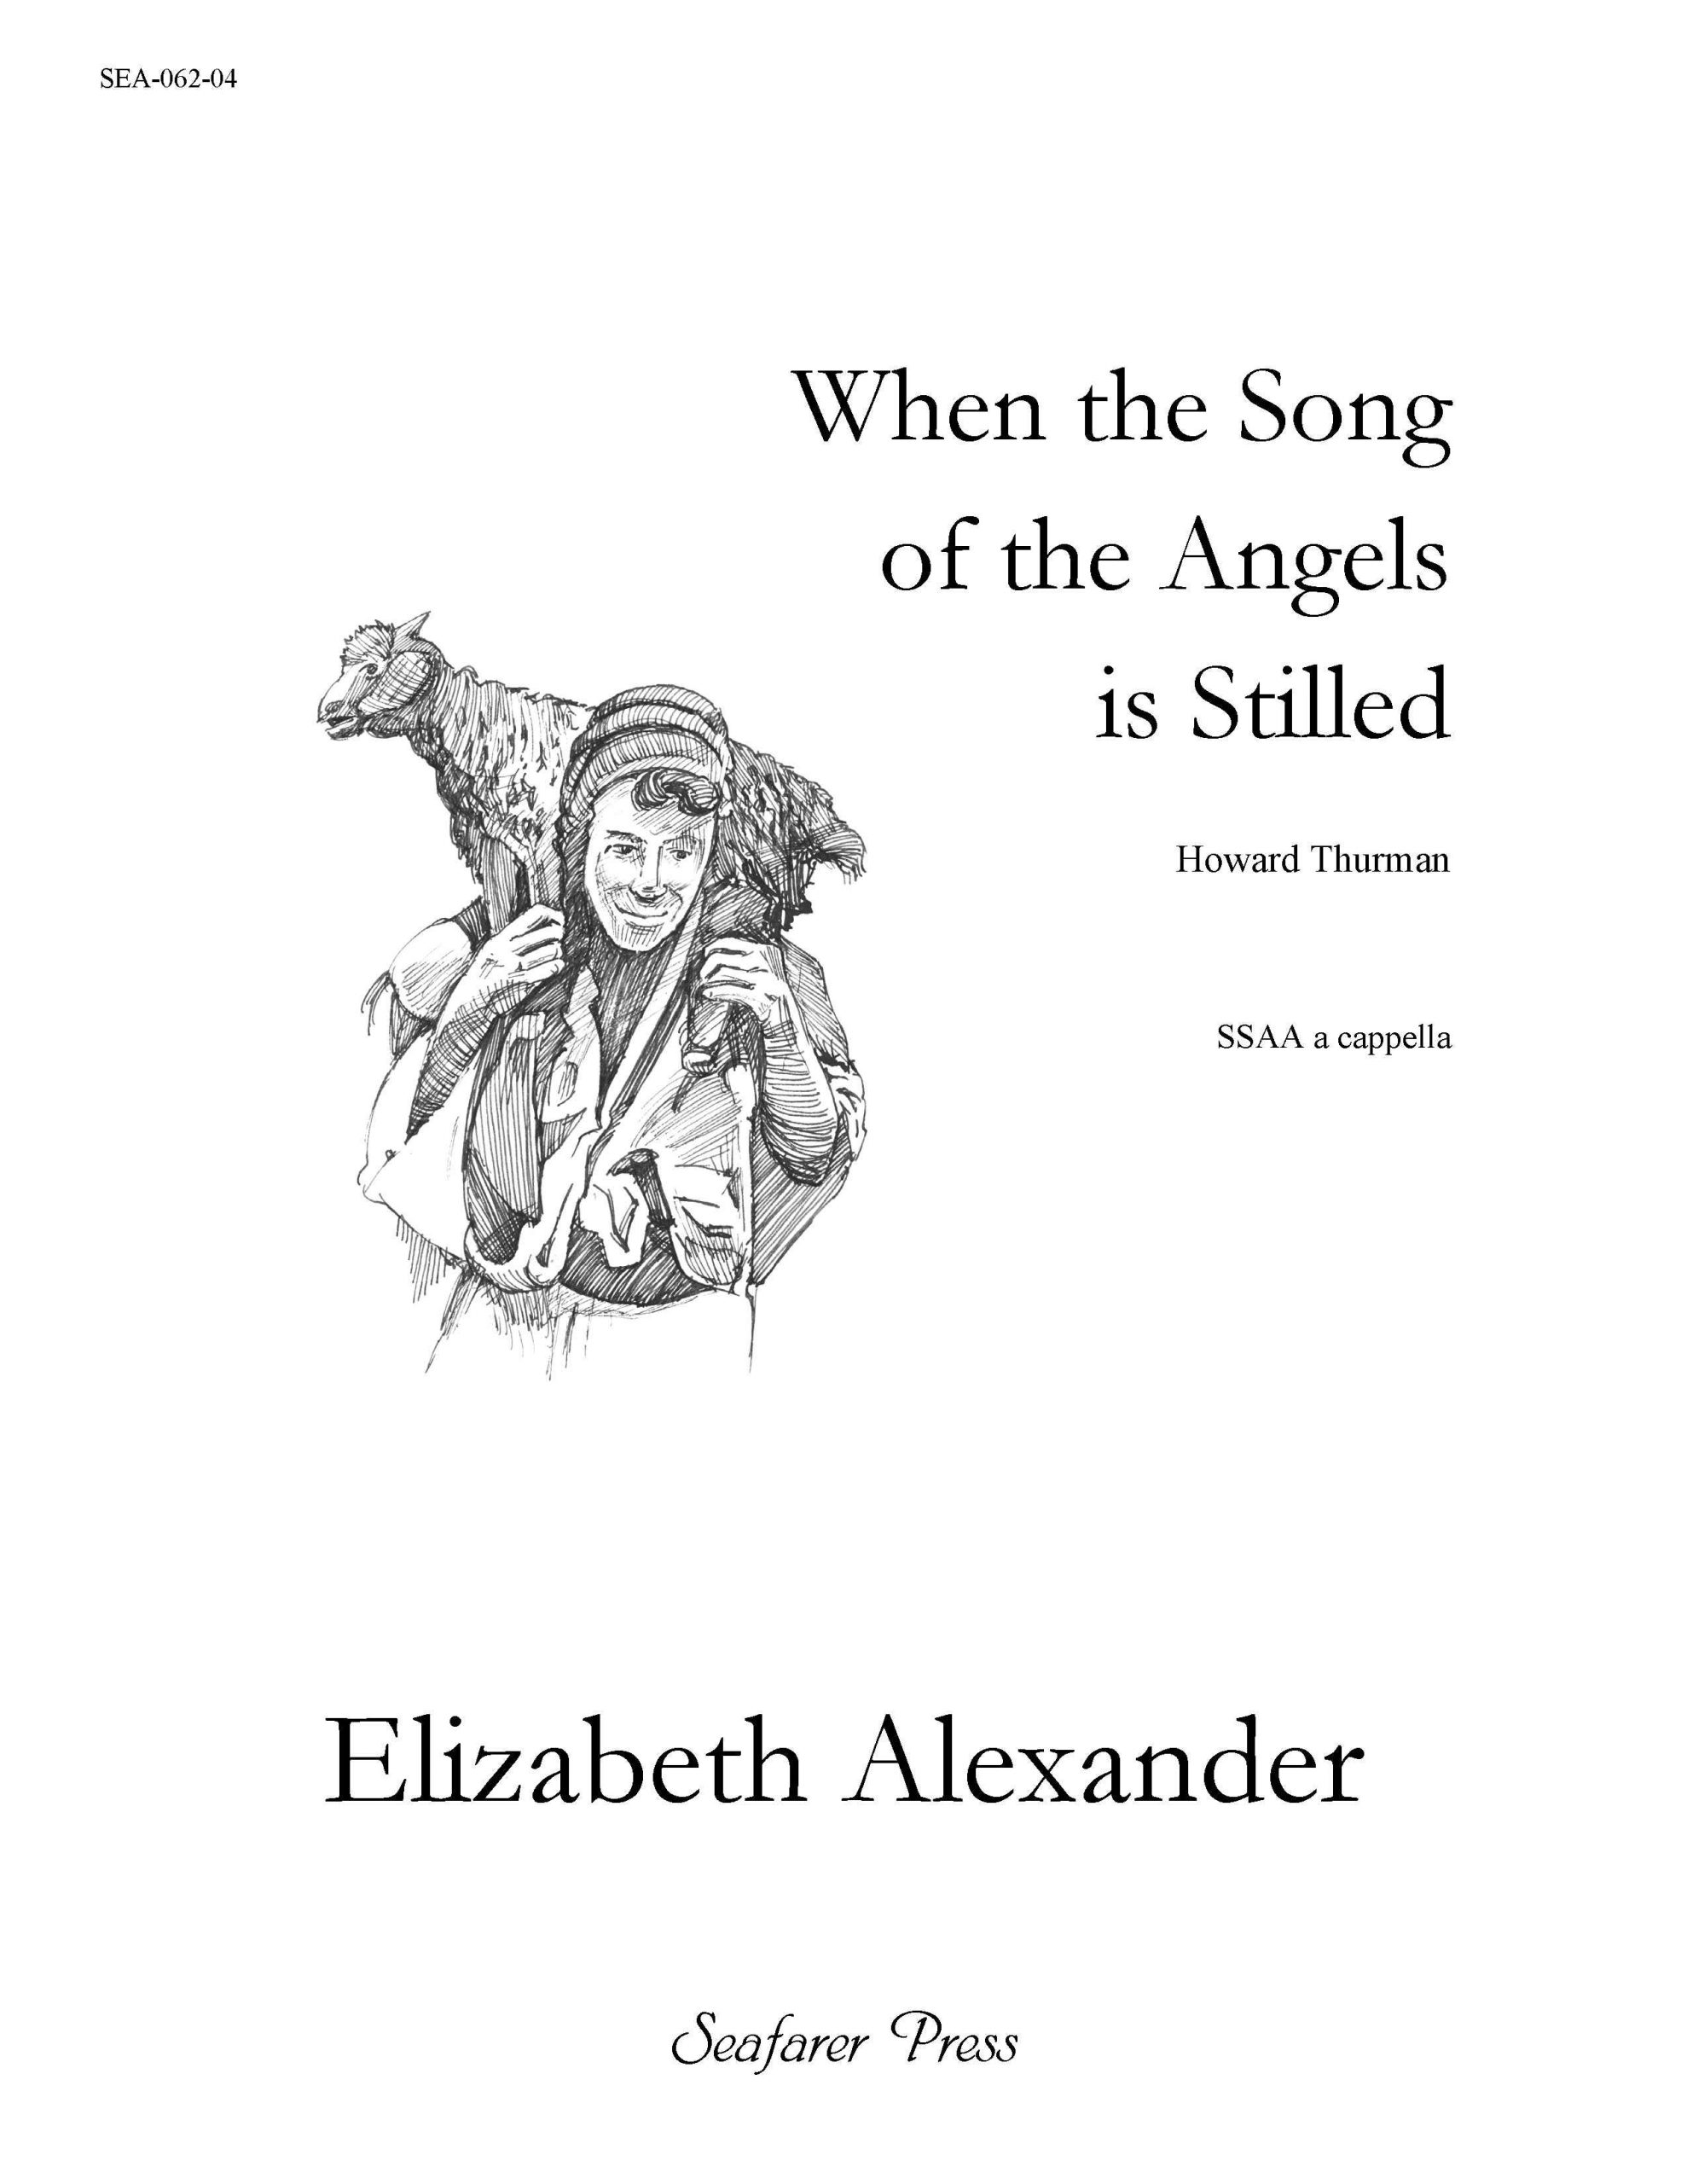 SEA-062-05 - When the Song of the Angels Is Stilled